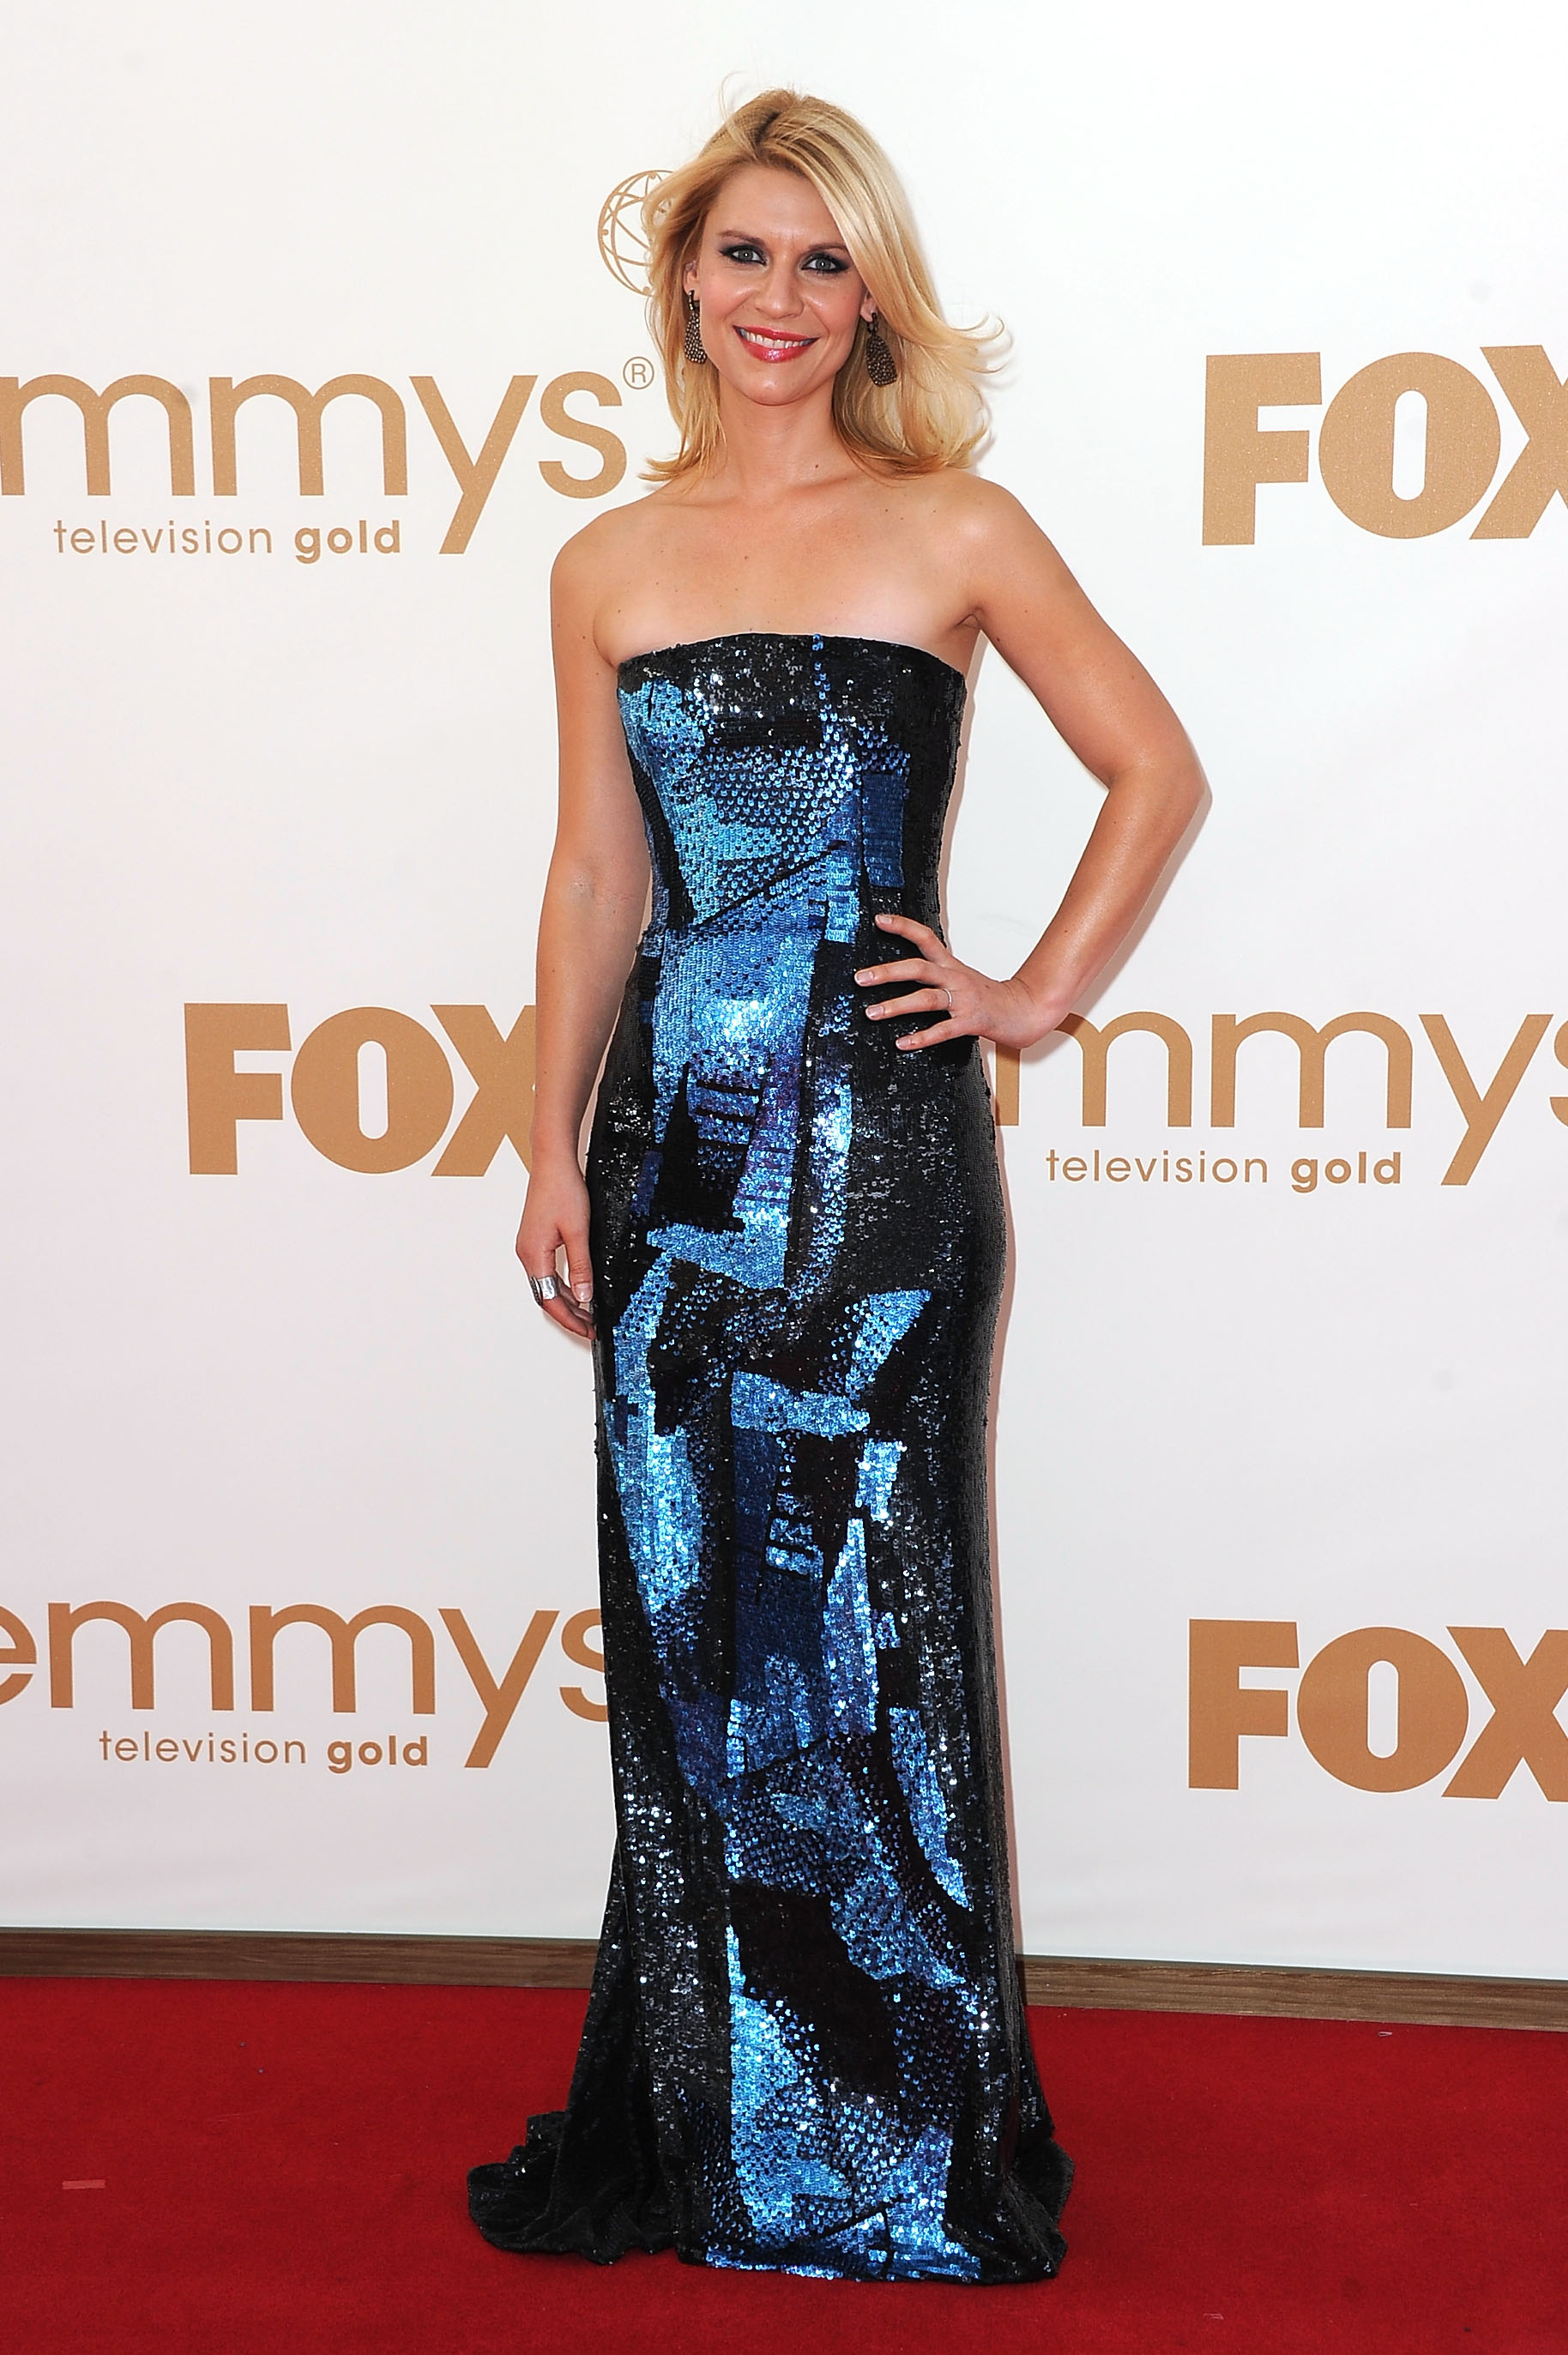 Claire Danes in Oscar de la Renta at the Emmys.